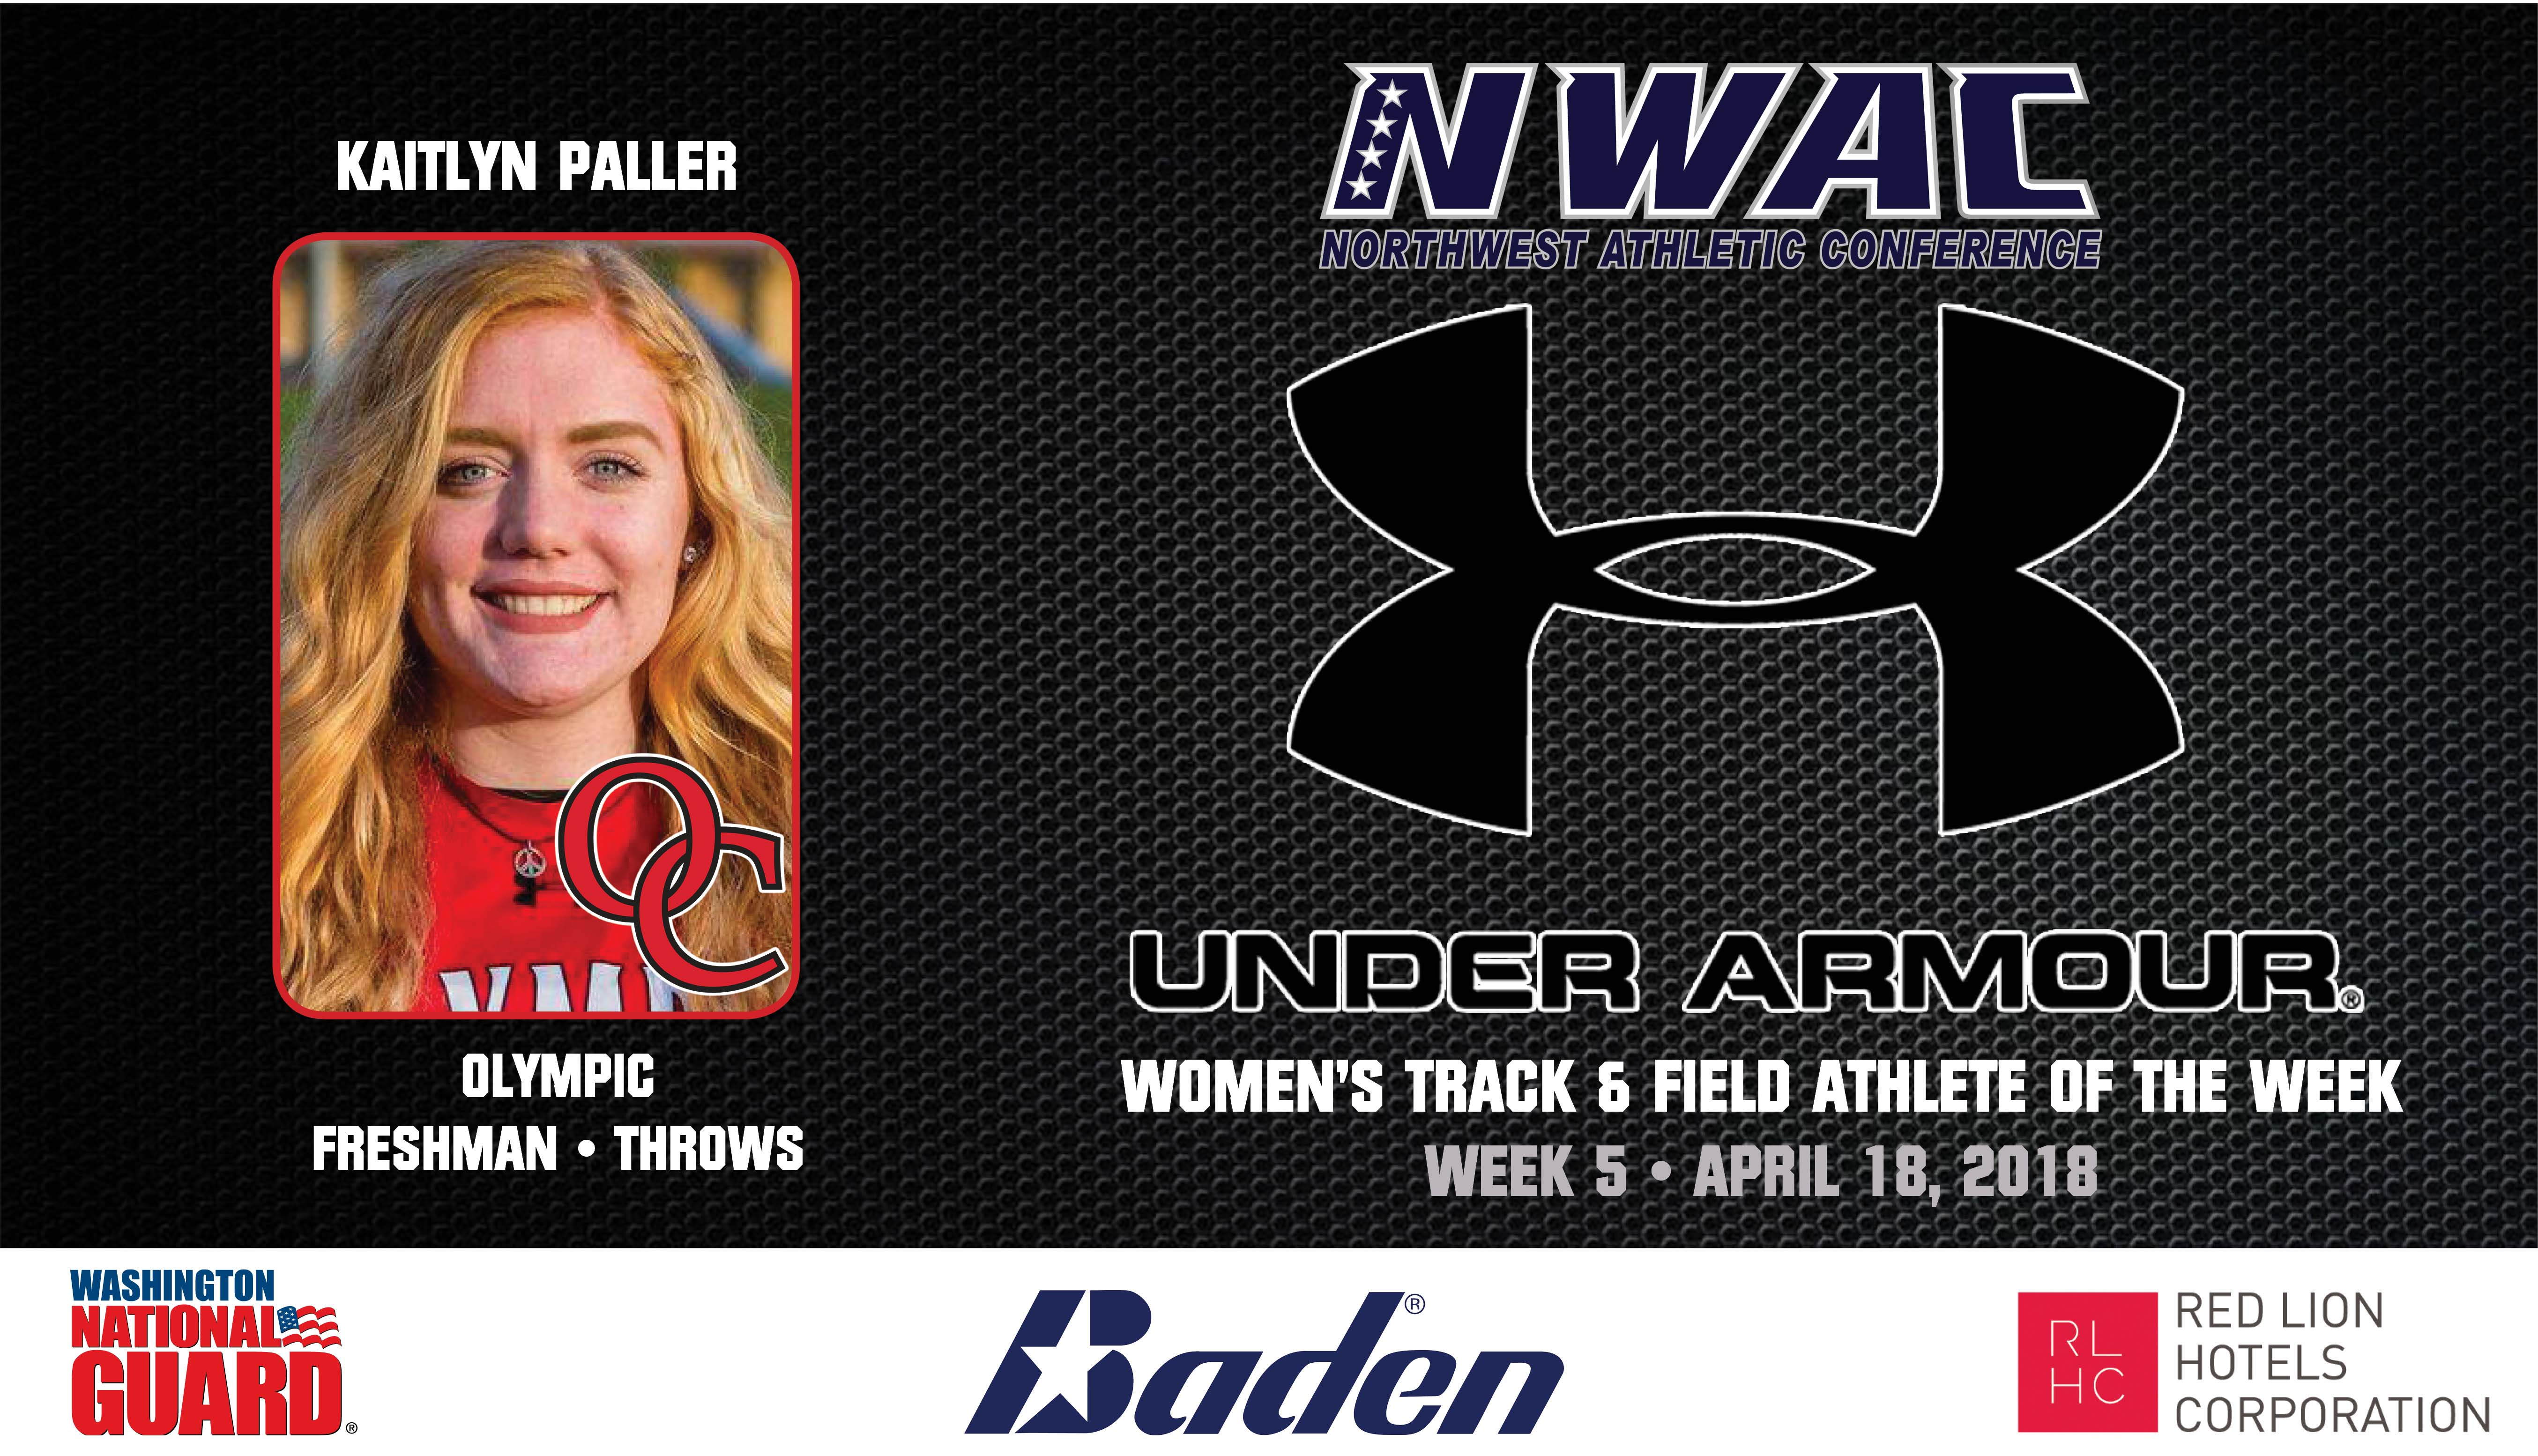 Kaitlyn Paller Under Armour image